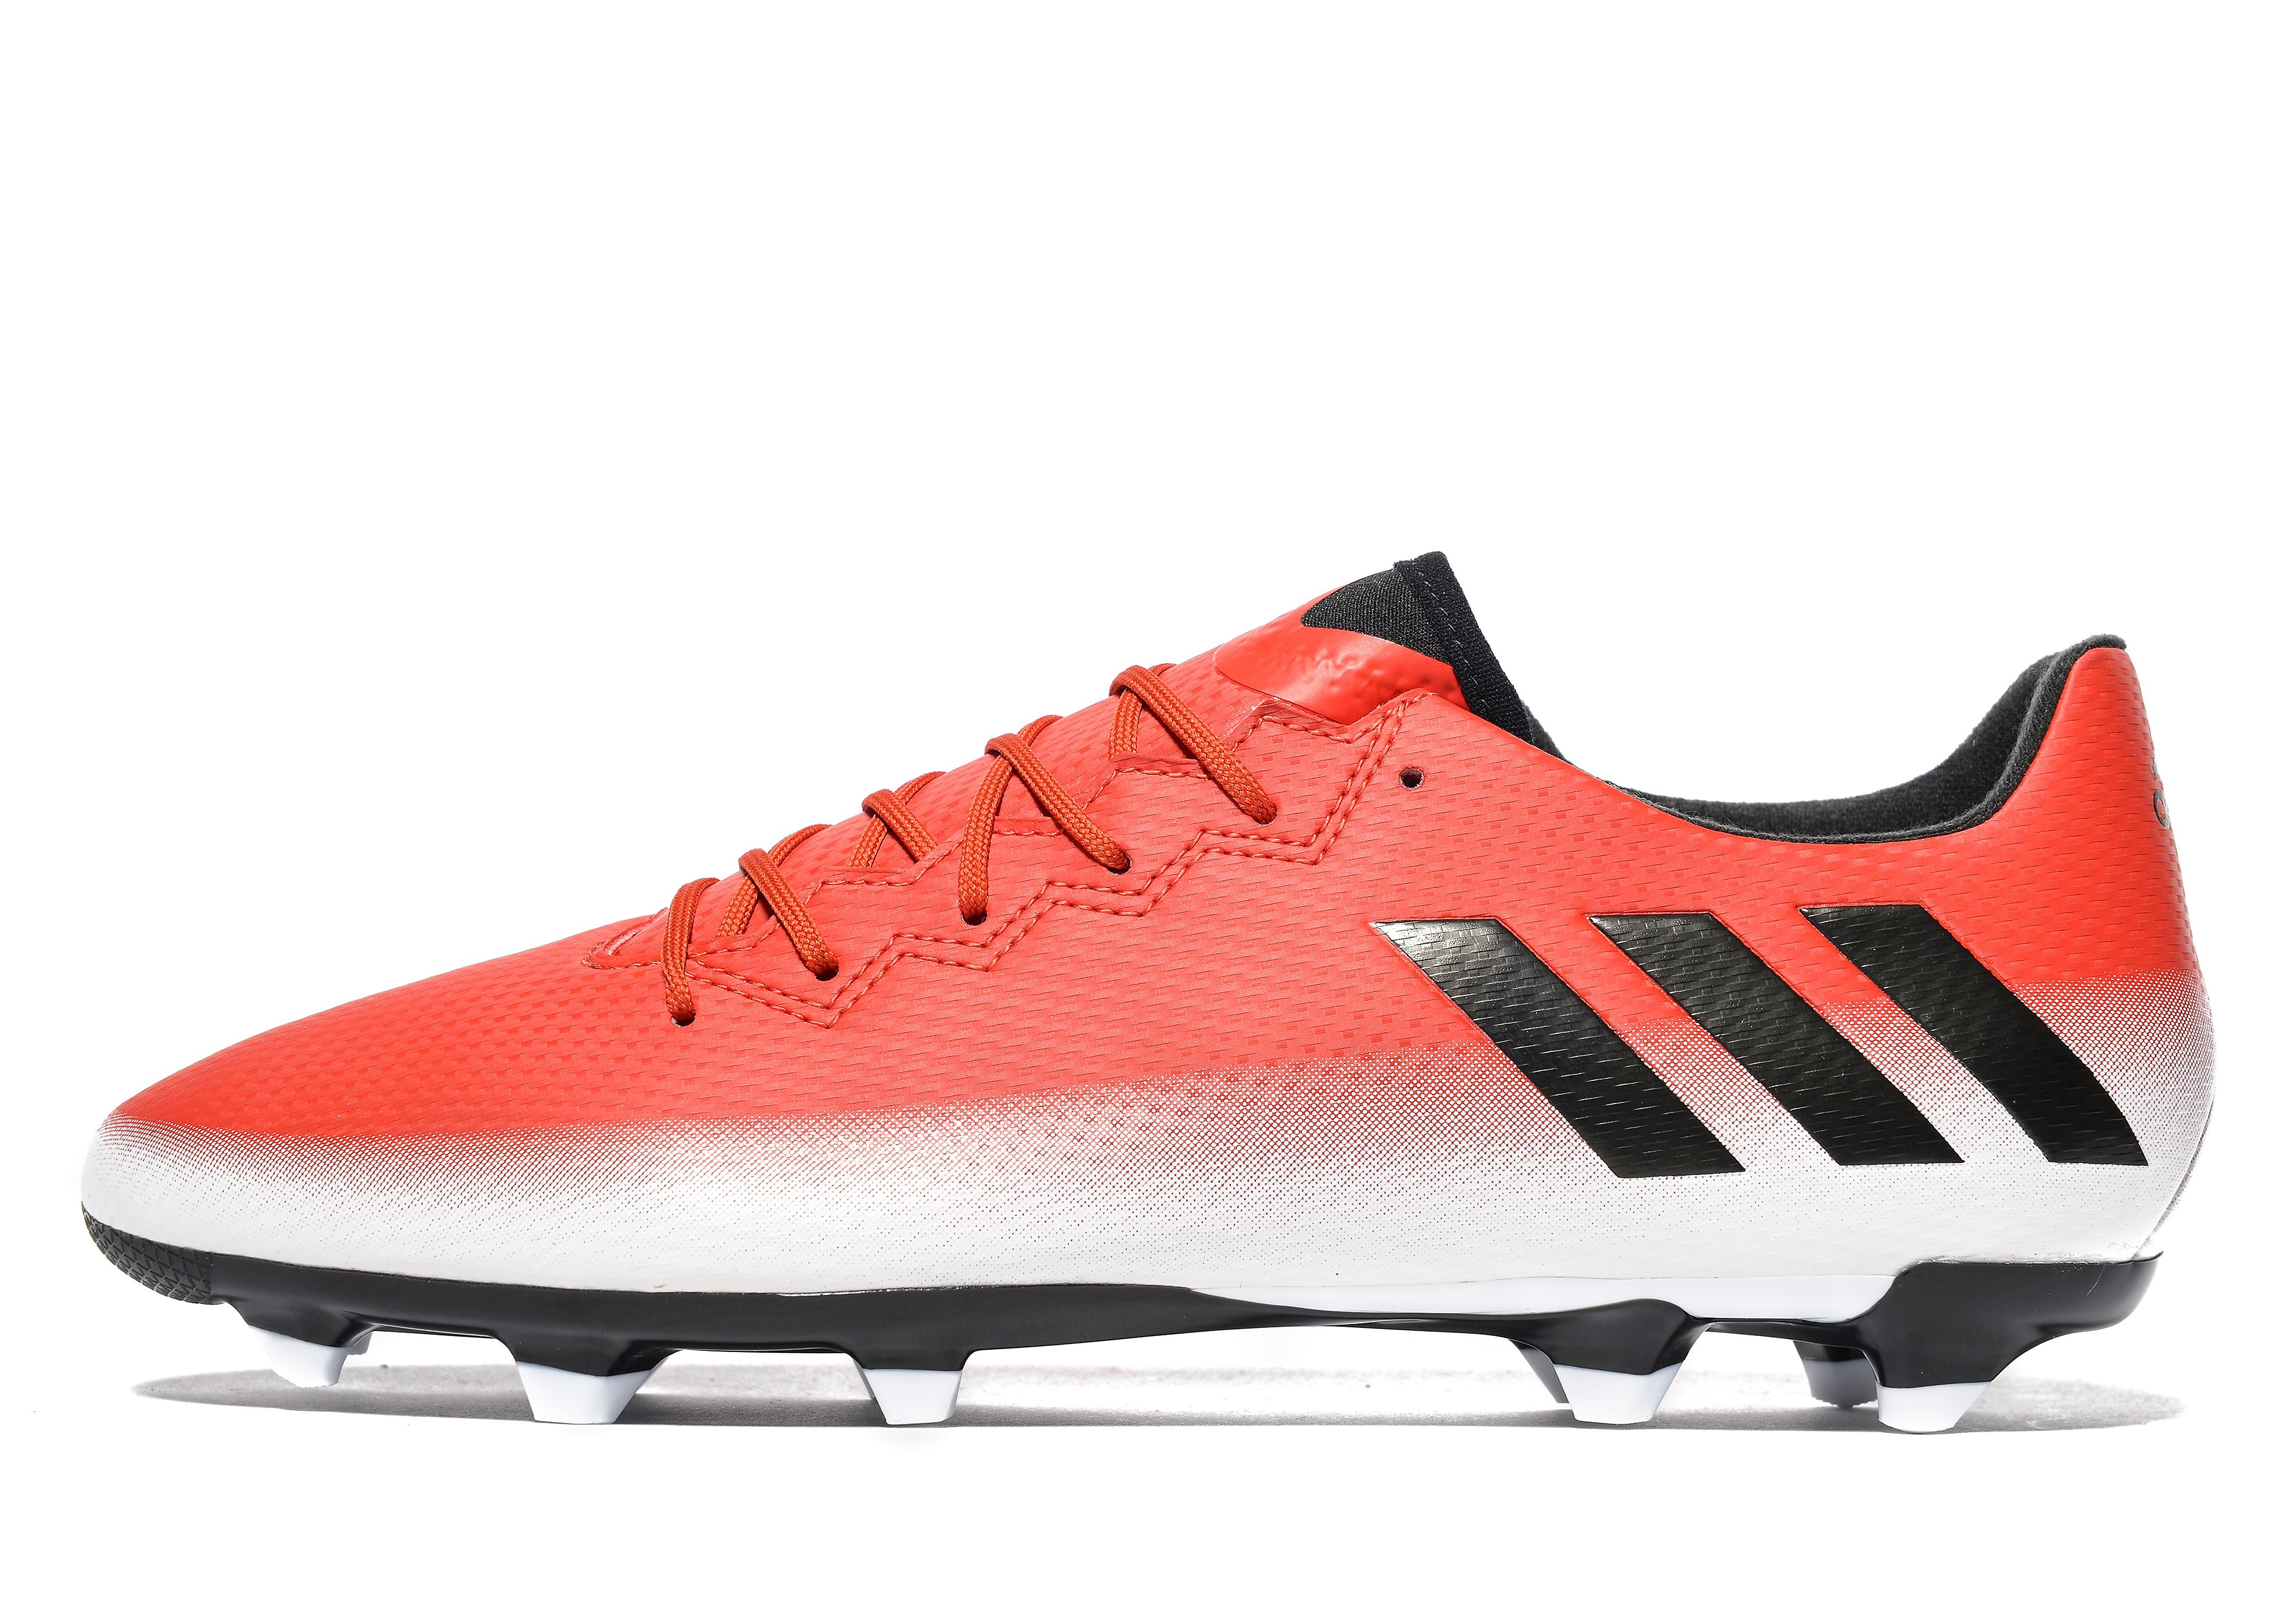 adidas Red Limit Messi 16.3 FG